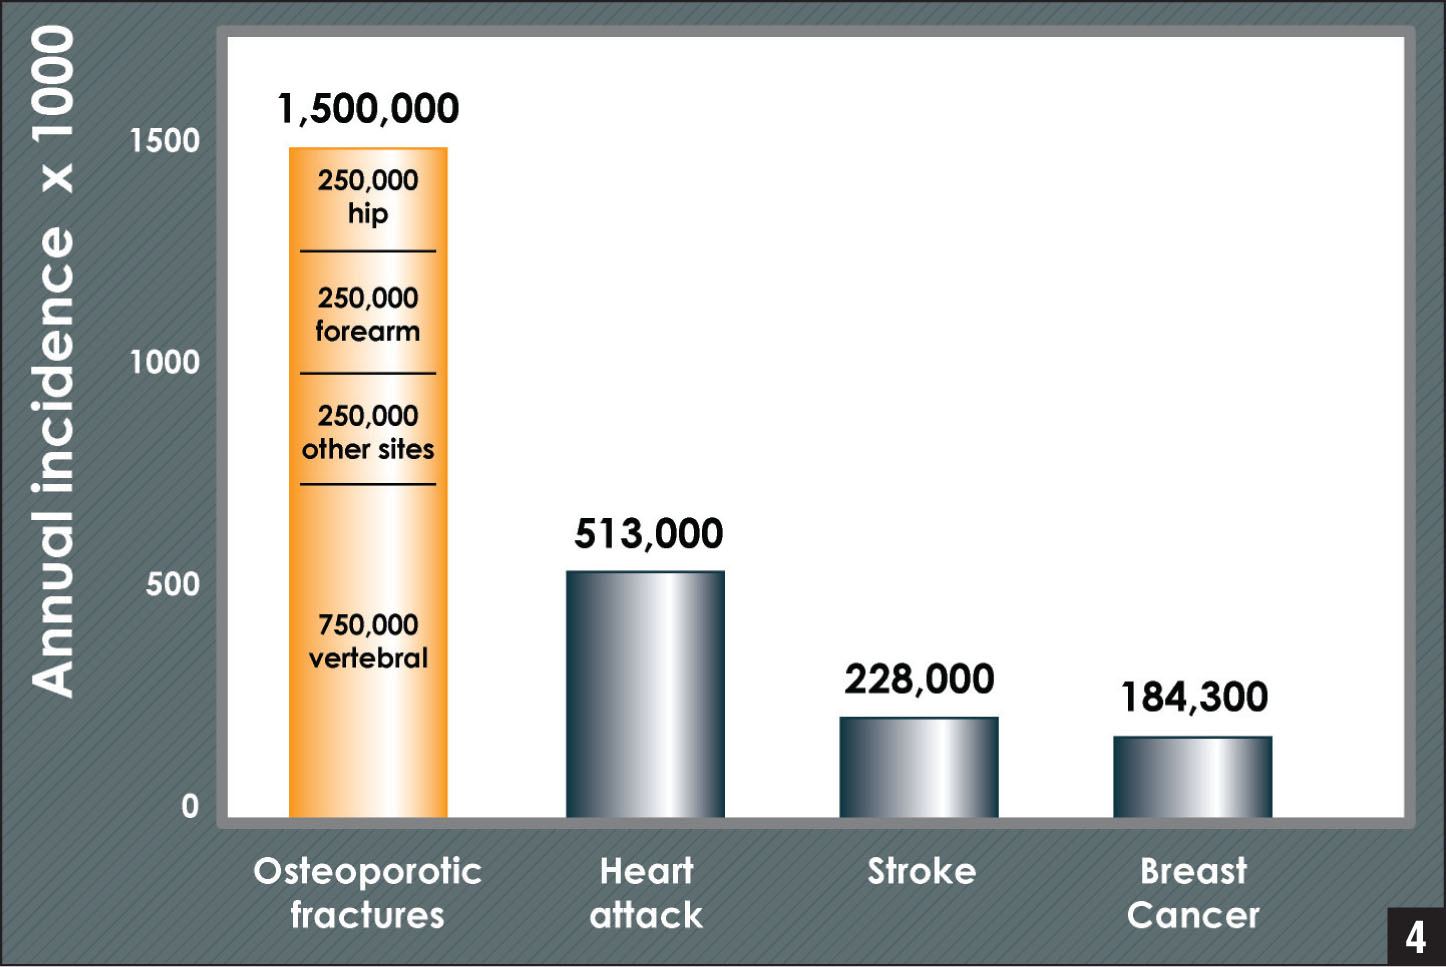 Osteoporotic fractures compared with other diseases. The annual risk of an osteoporotic fracture far exceeds the risk of other diseases receiving more attention. Osteoporotic fracture annual incidence* surpasses the combined estimated incidence of heart attacks in women older than 29 years,† stroke in women older than 30 years,† and new breast cancer cases‡ by more than 60%. Data from *Riggs and Melton,5†the American Heart Association,6 and ‡the American Cancer Society.7